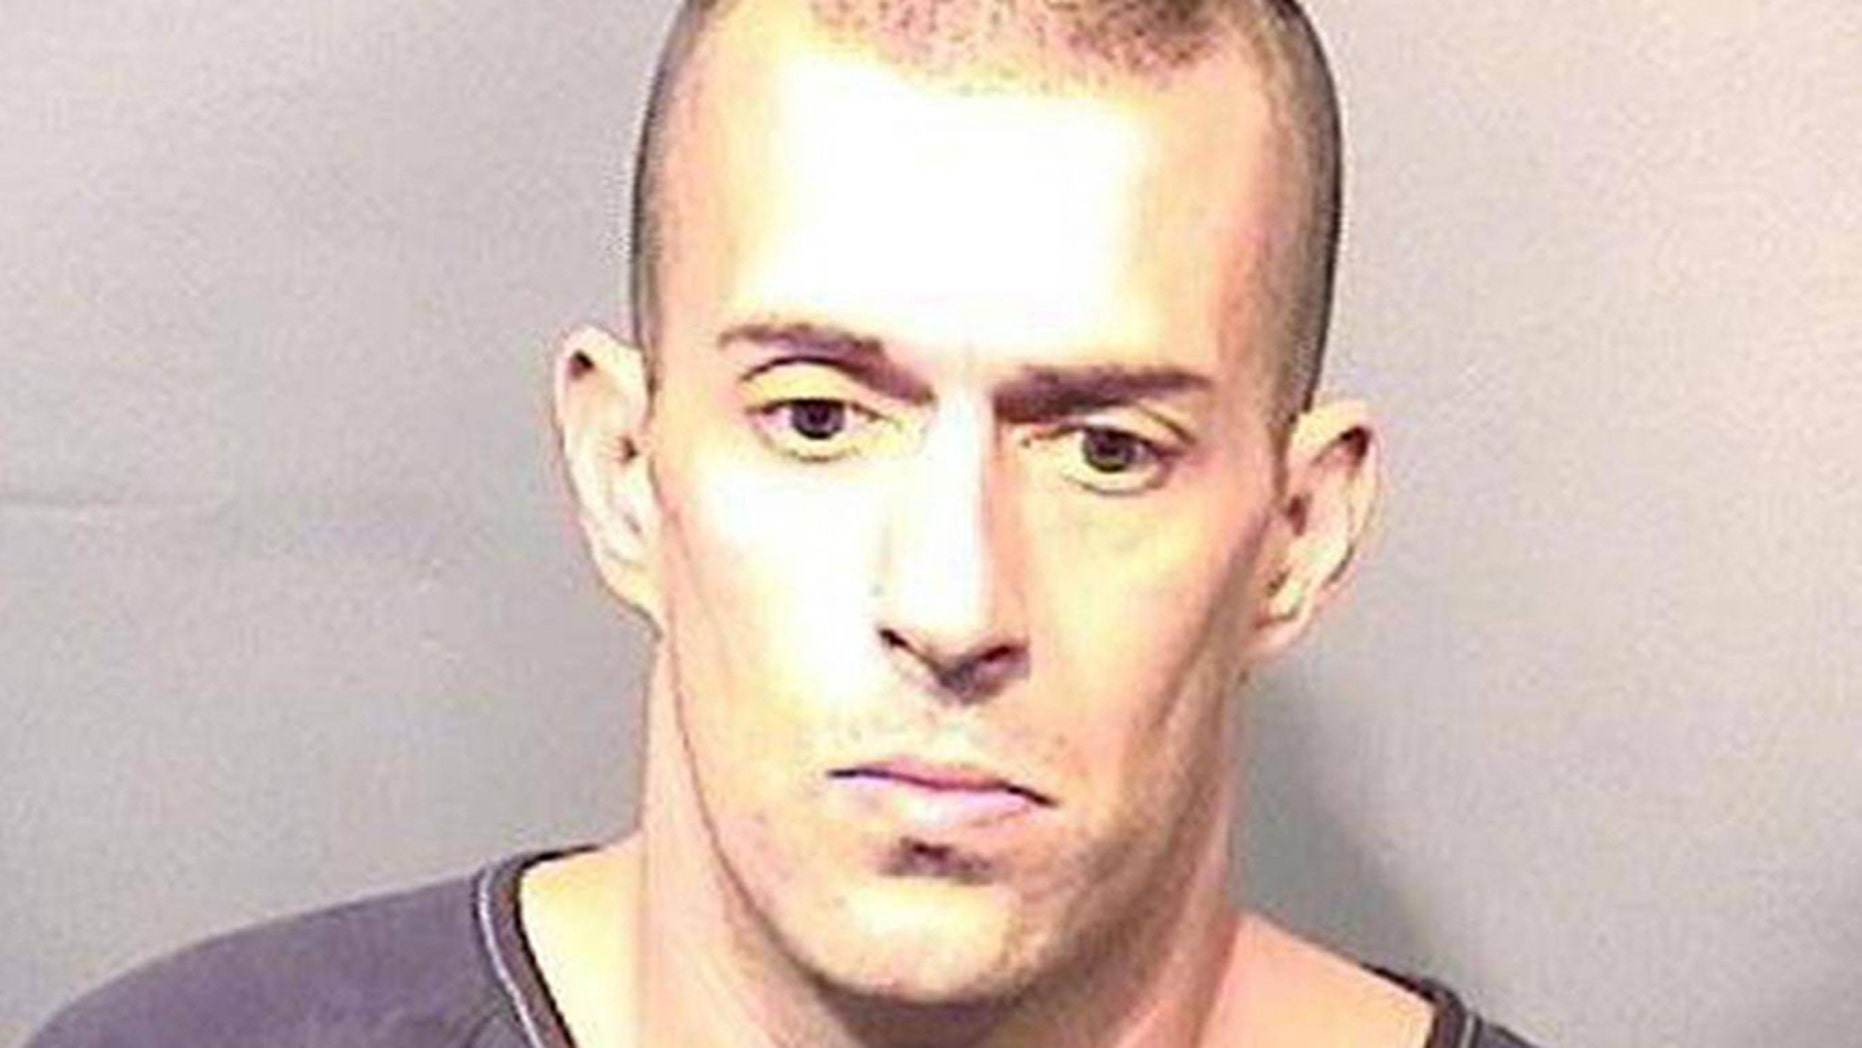 Michael Wolfe pleaded guilty on Tuesday to a criminal mischief charge.